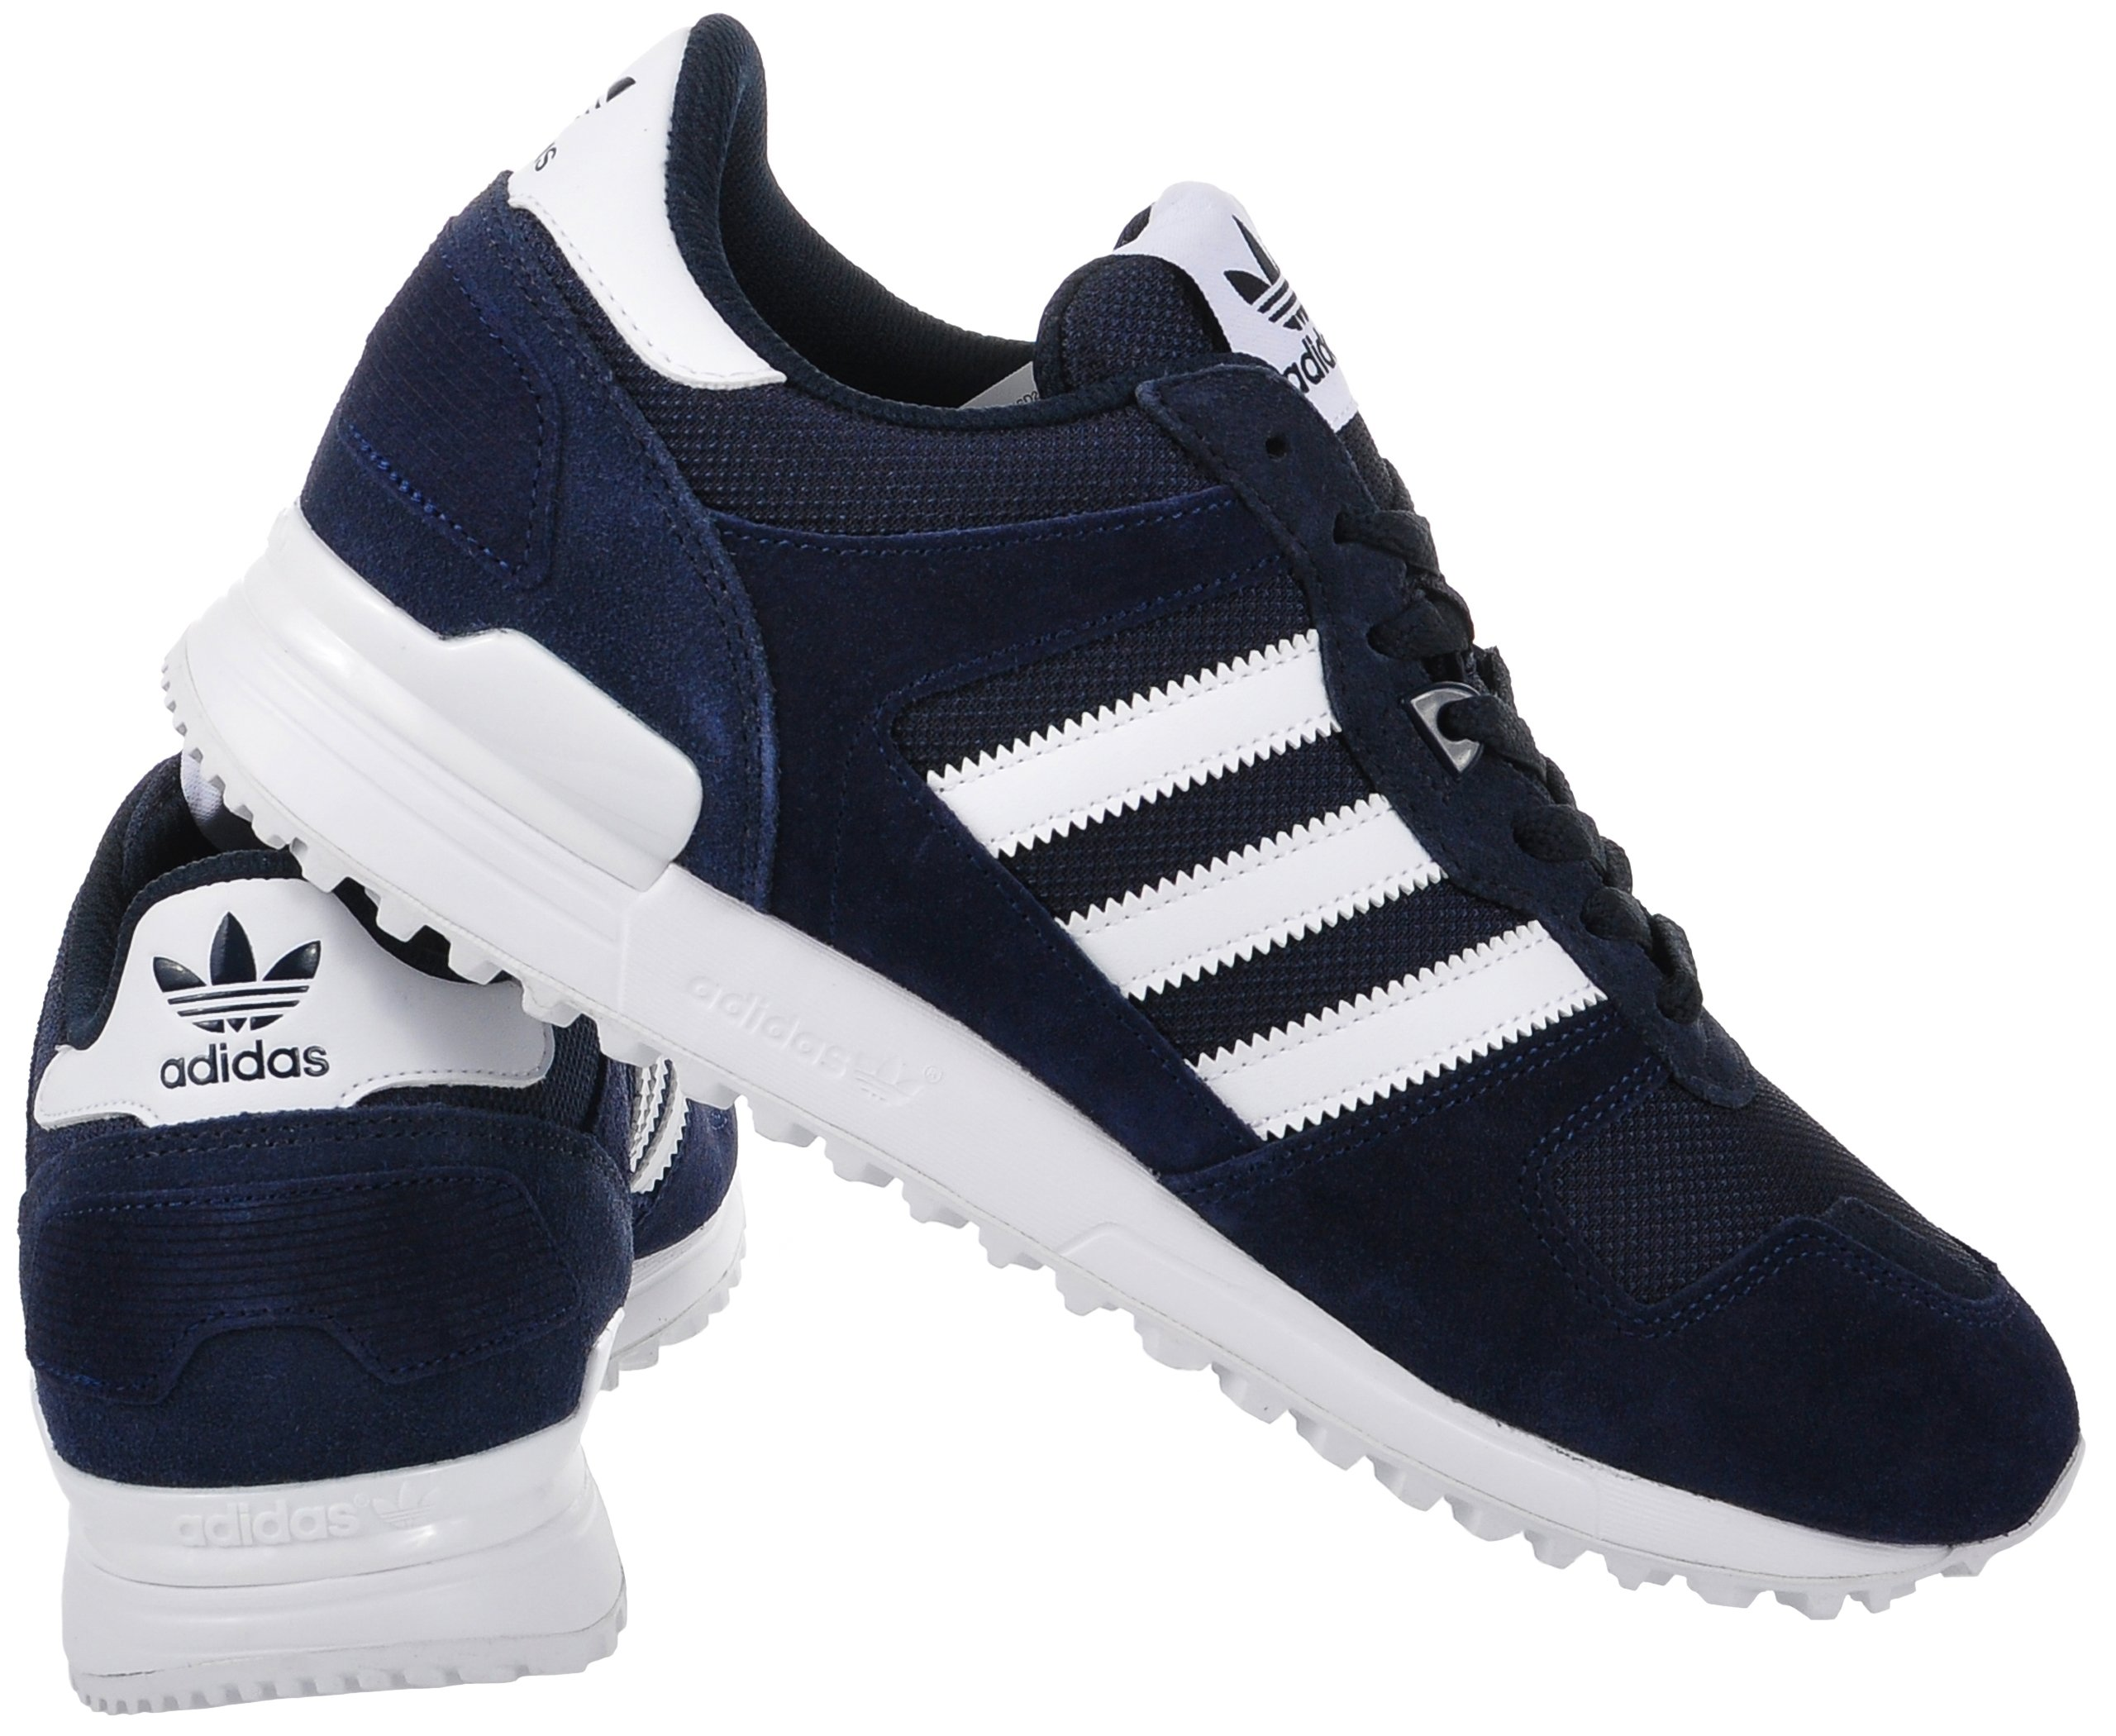 buy popular d2a5b 24544 official adidas zx 700 42 f5207 27c87